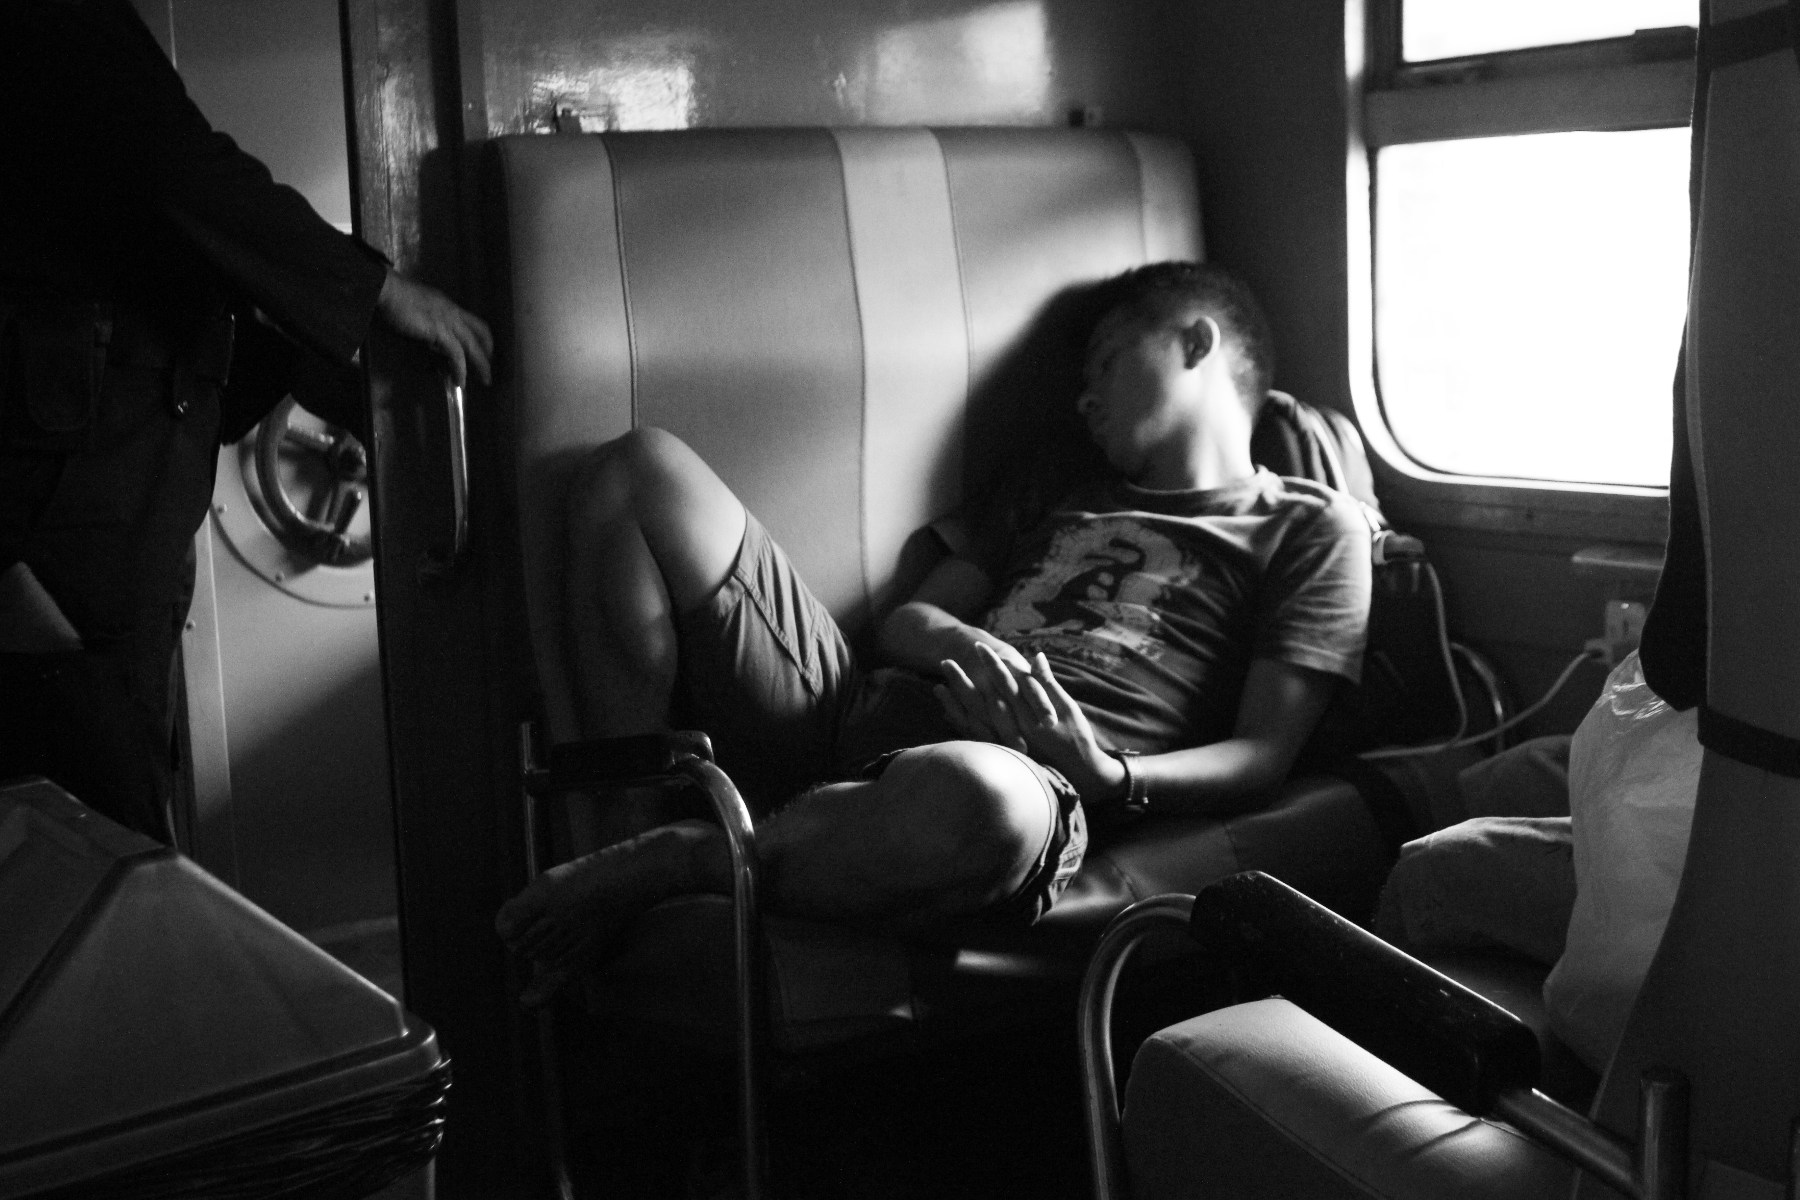 A man sleeping in the train